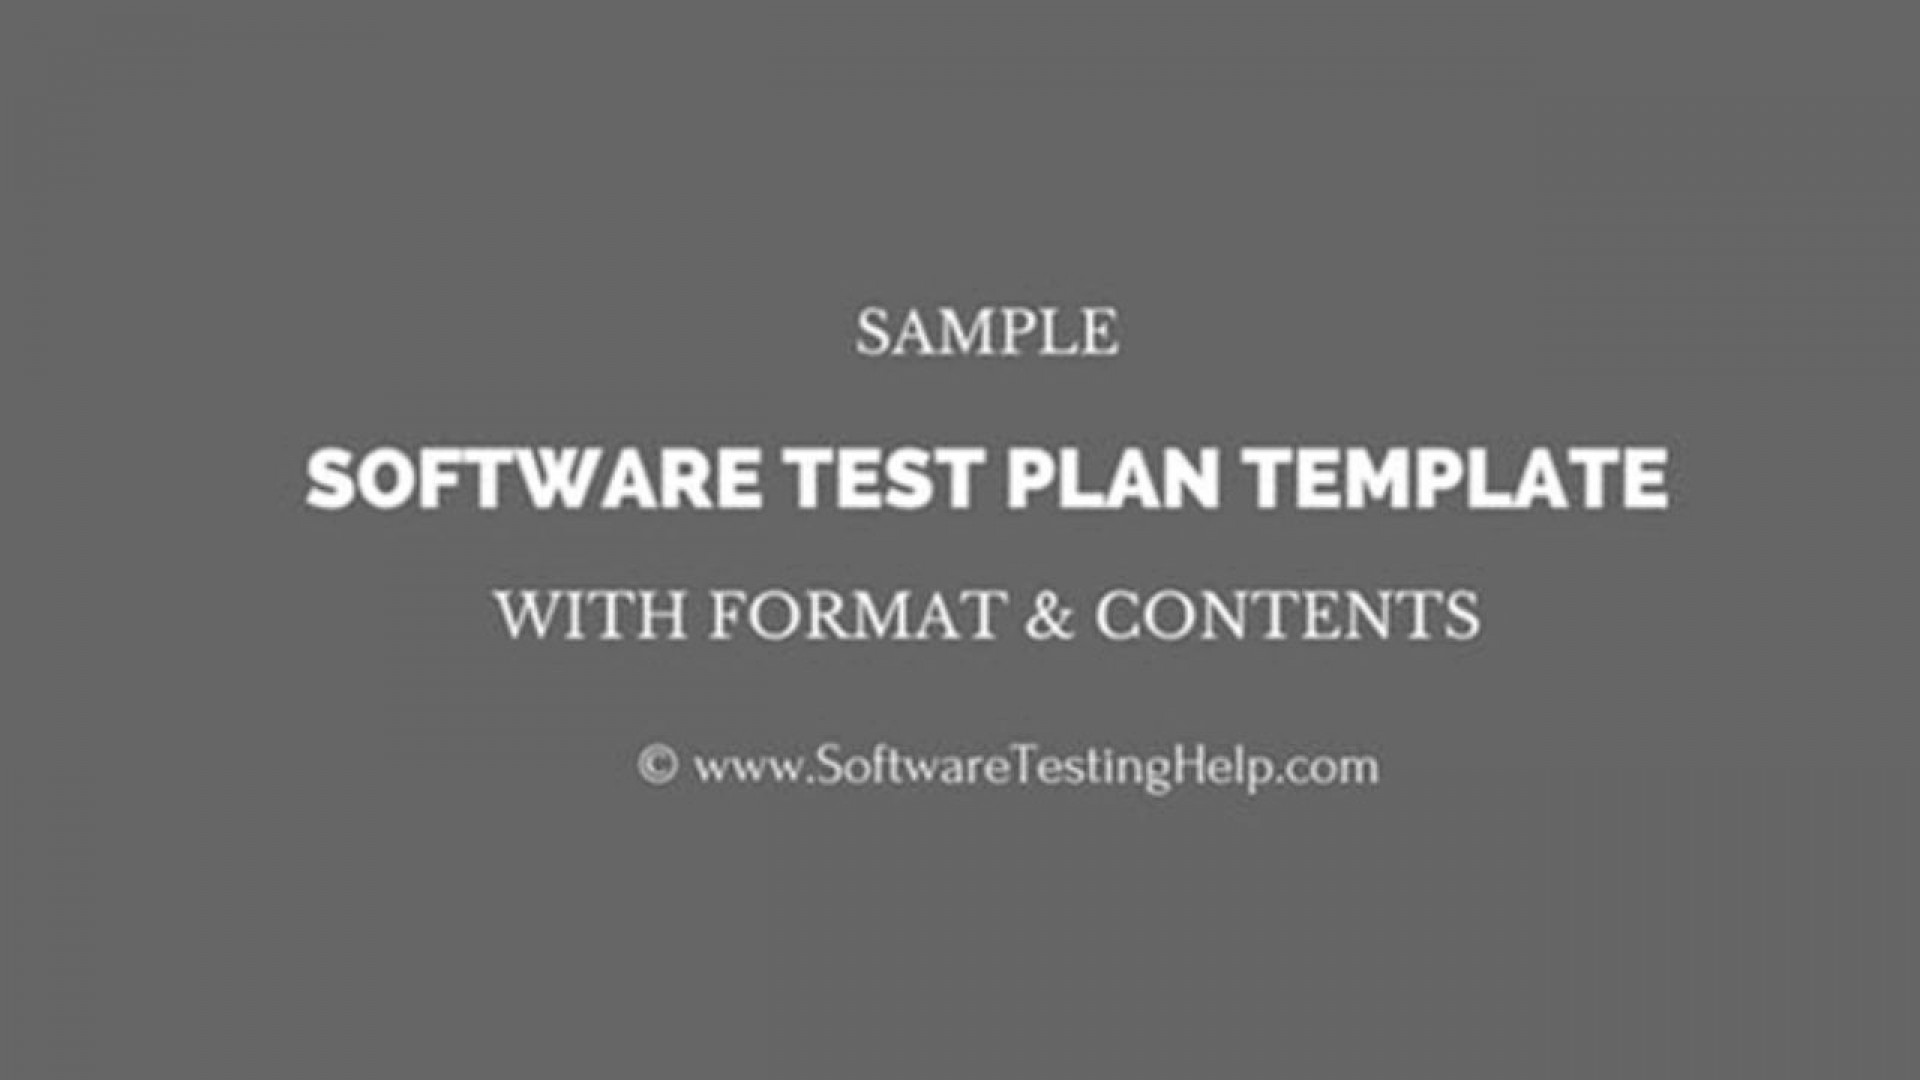 003 Amazing Software Test Plan Template Image  Templates1920